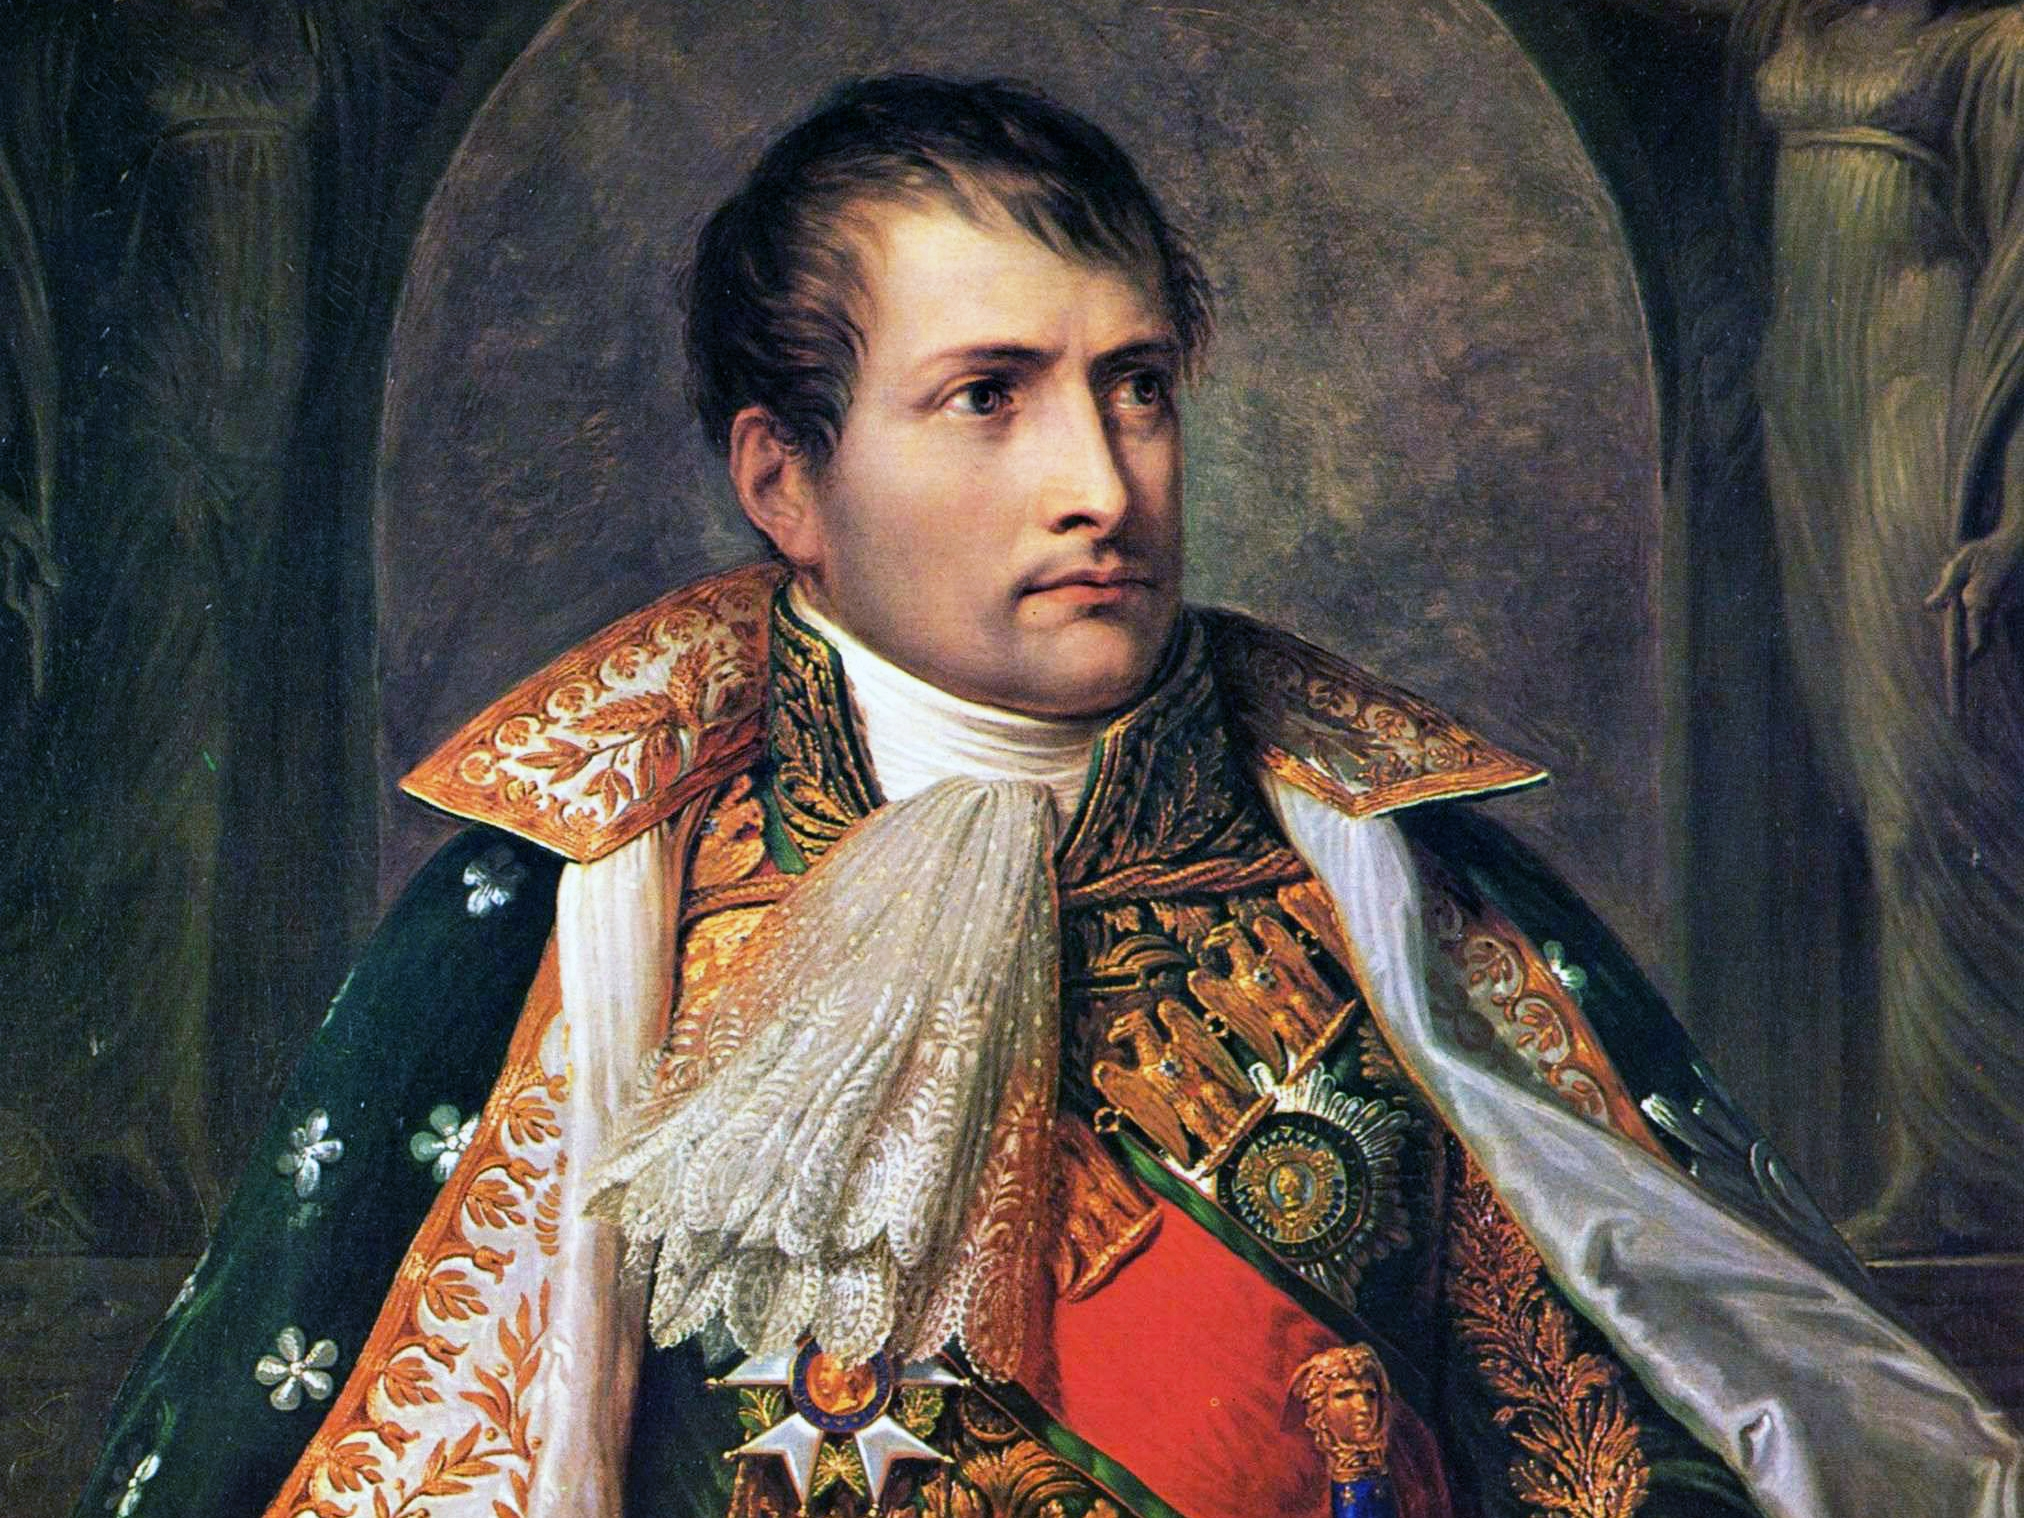 The French Directory sent Napoleon to invade Austria and Egypt. When he returned, he declared himself Consul, wrote the new French constitution. He sold Louisiana to the United States to fund his invasion on England. In 1804 he crowned himself the Emperor of the French.